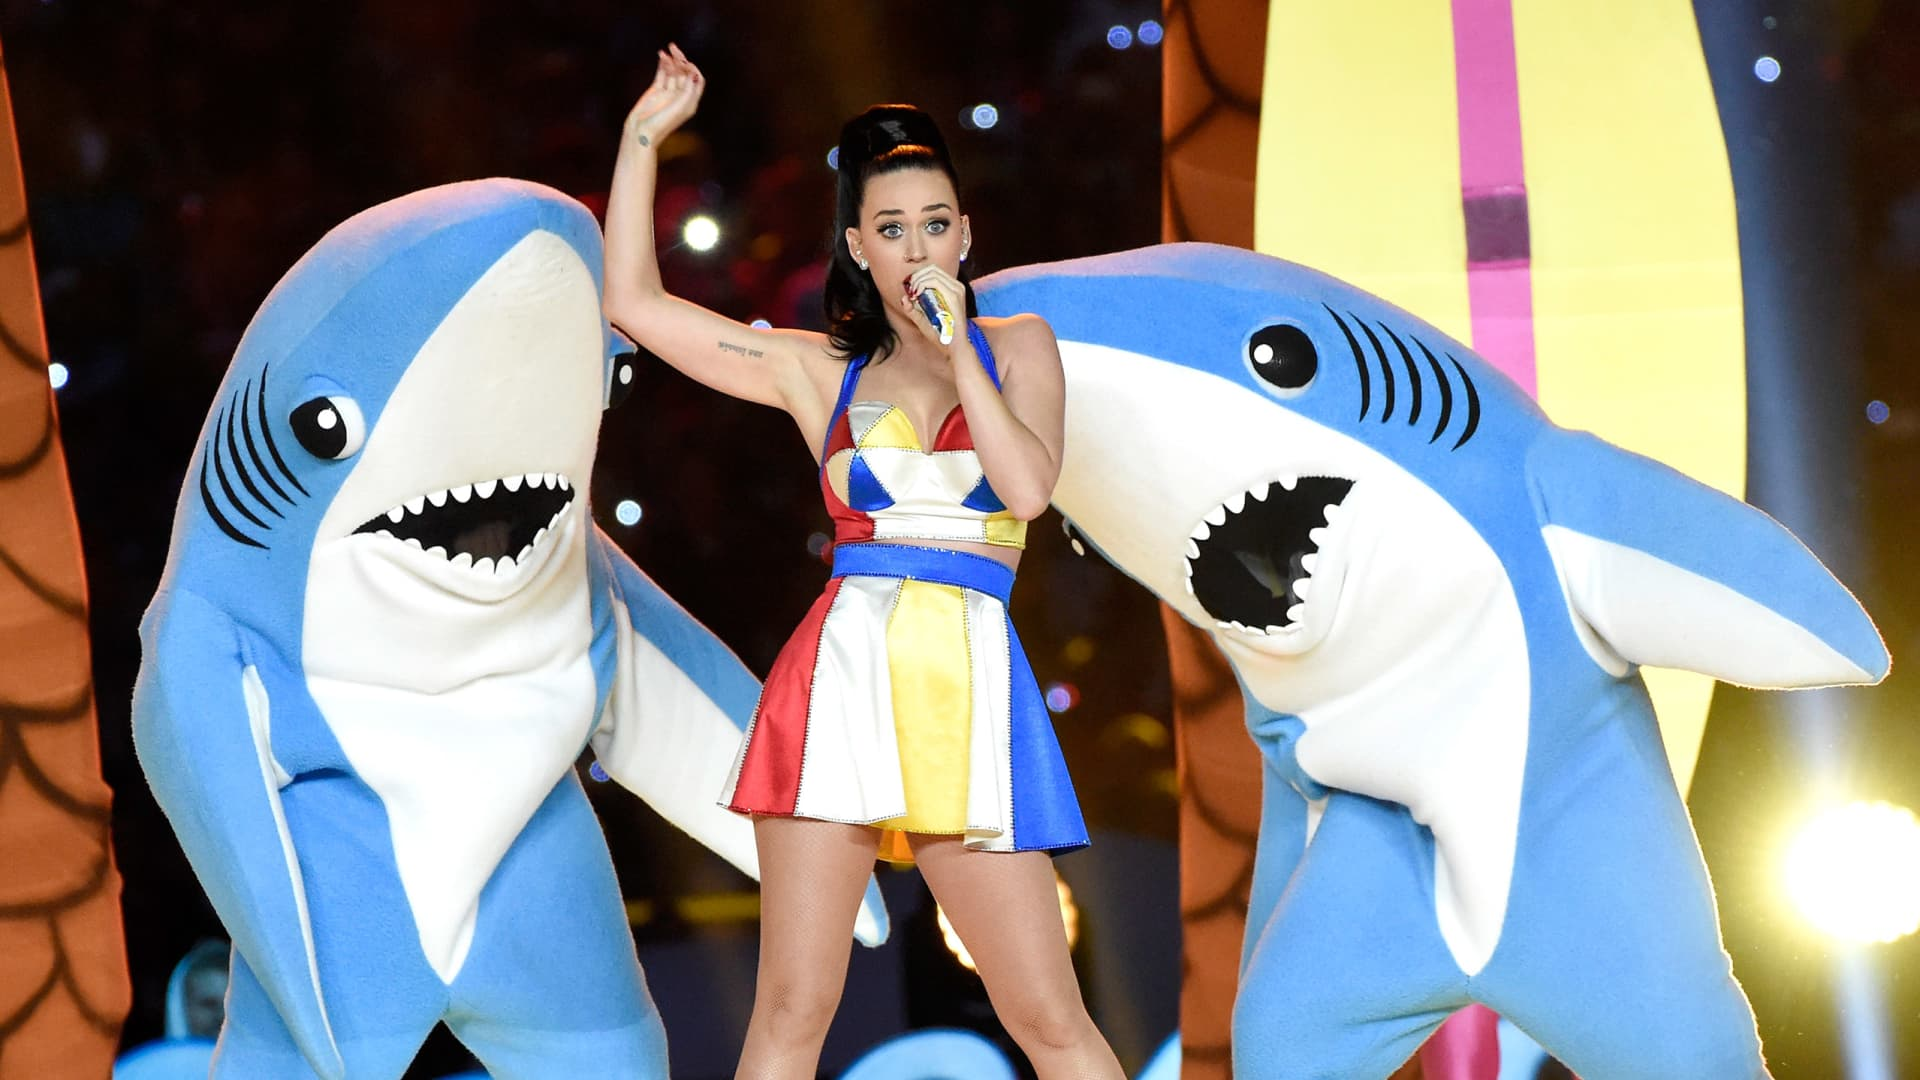 Recording artist Katy Perry performs onstage during the Pepsi Super Bowl XLIX Halftime Show at University of Phoenix Stadium on February 1, 2015 in Glendale, Arizona.(Photo by Kevin Mazur/WireImage)